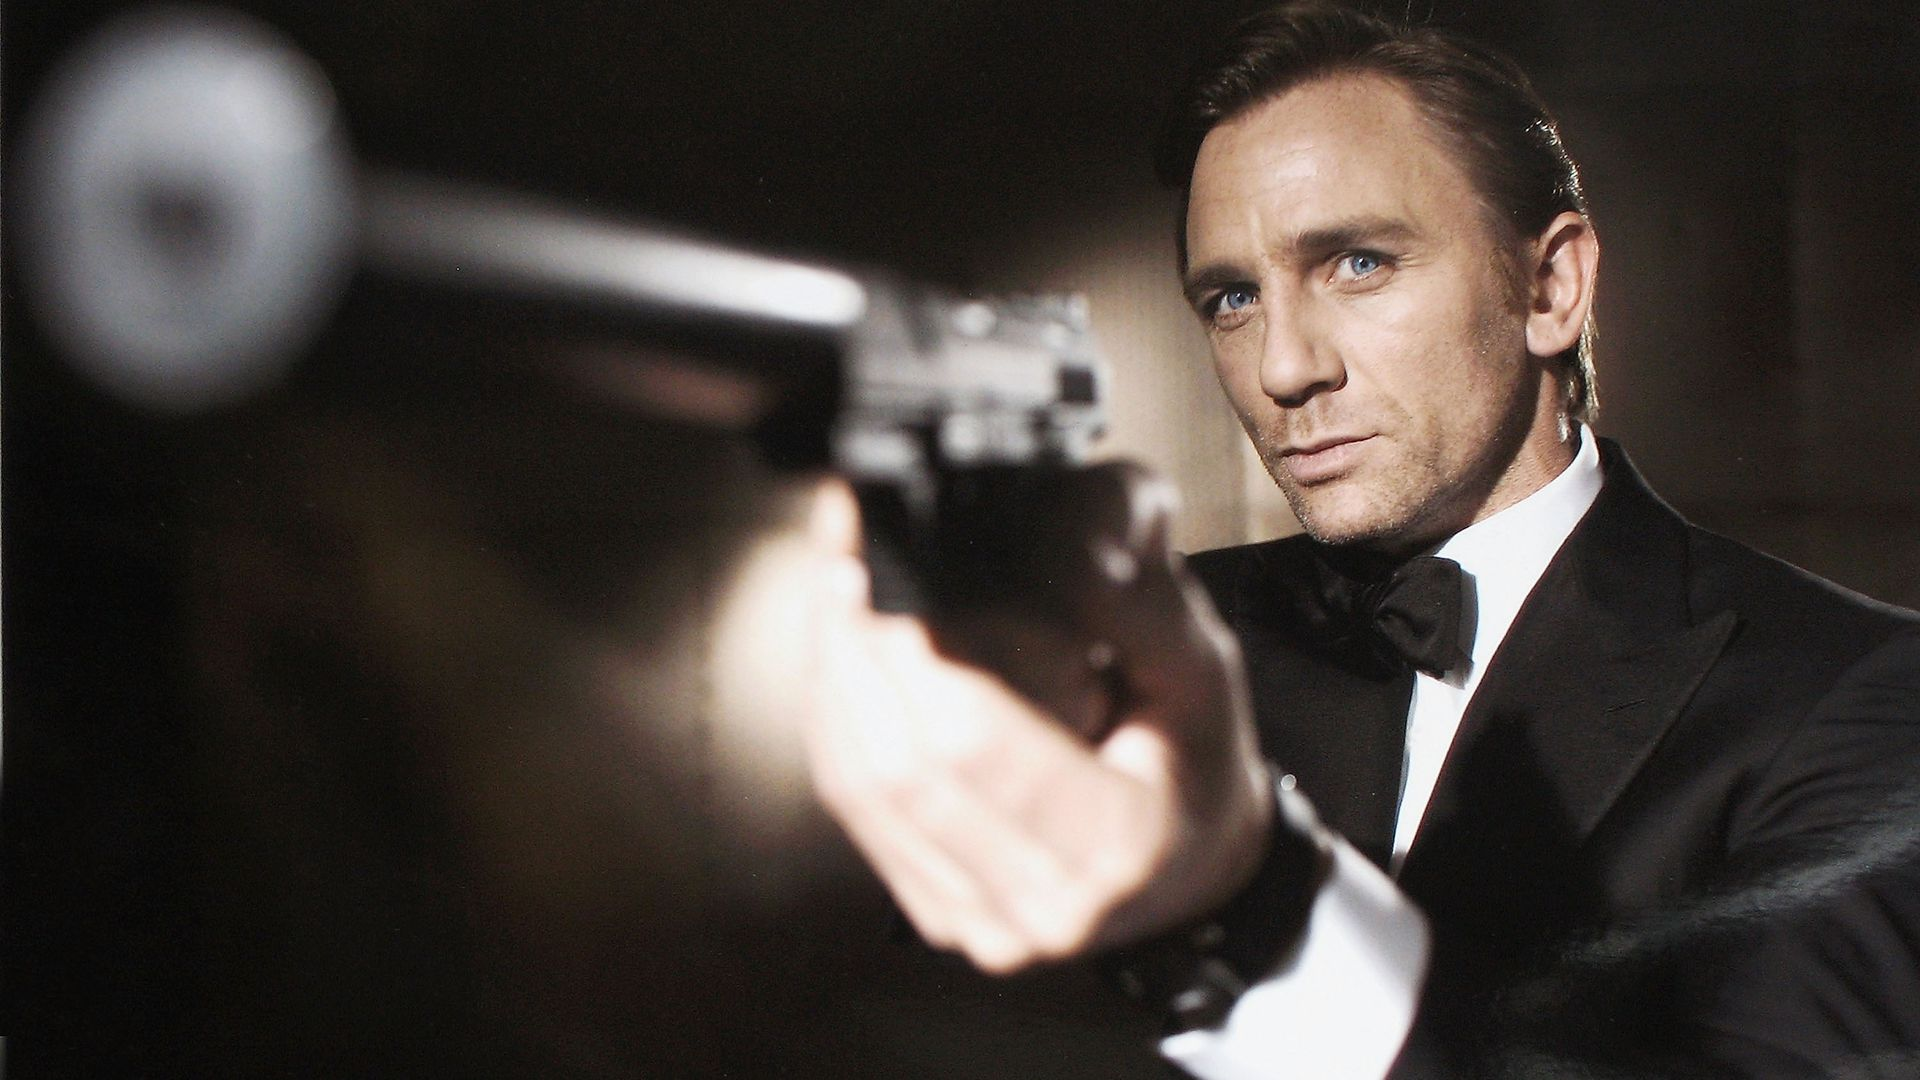 James Bond, with gun